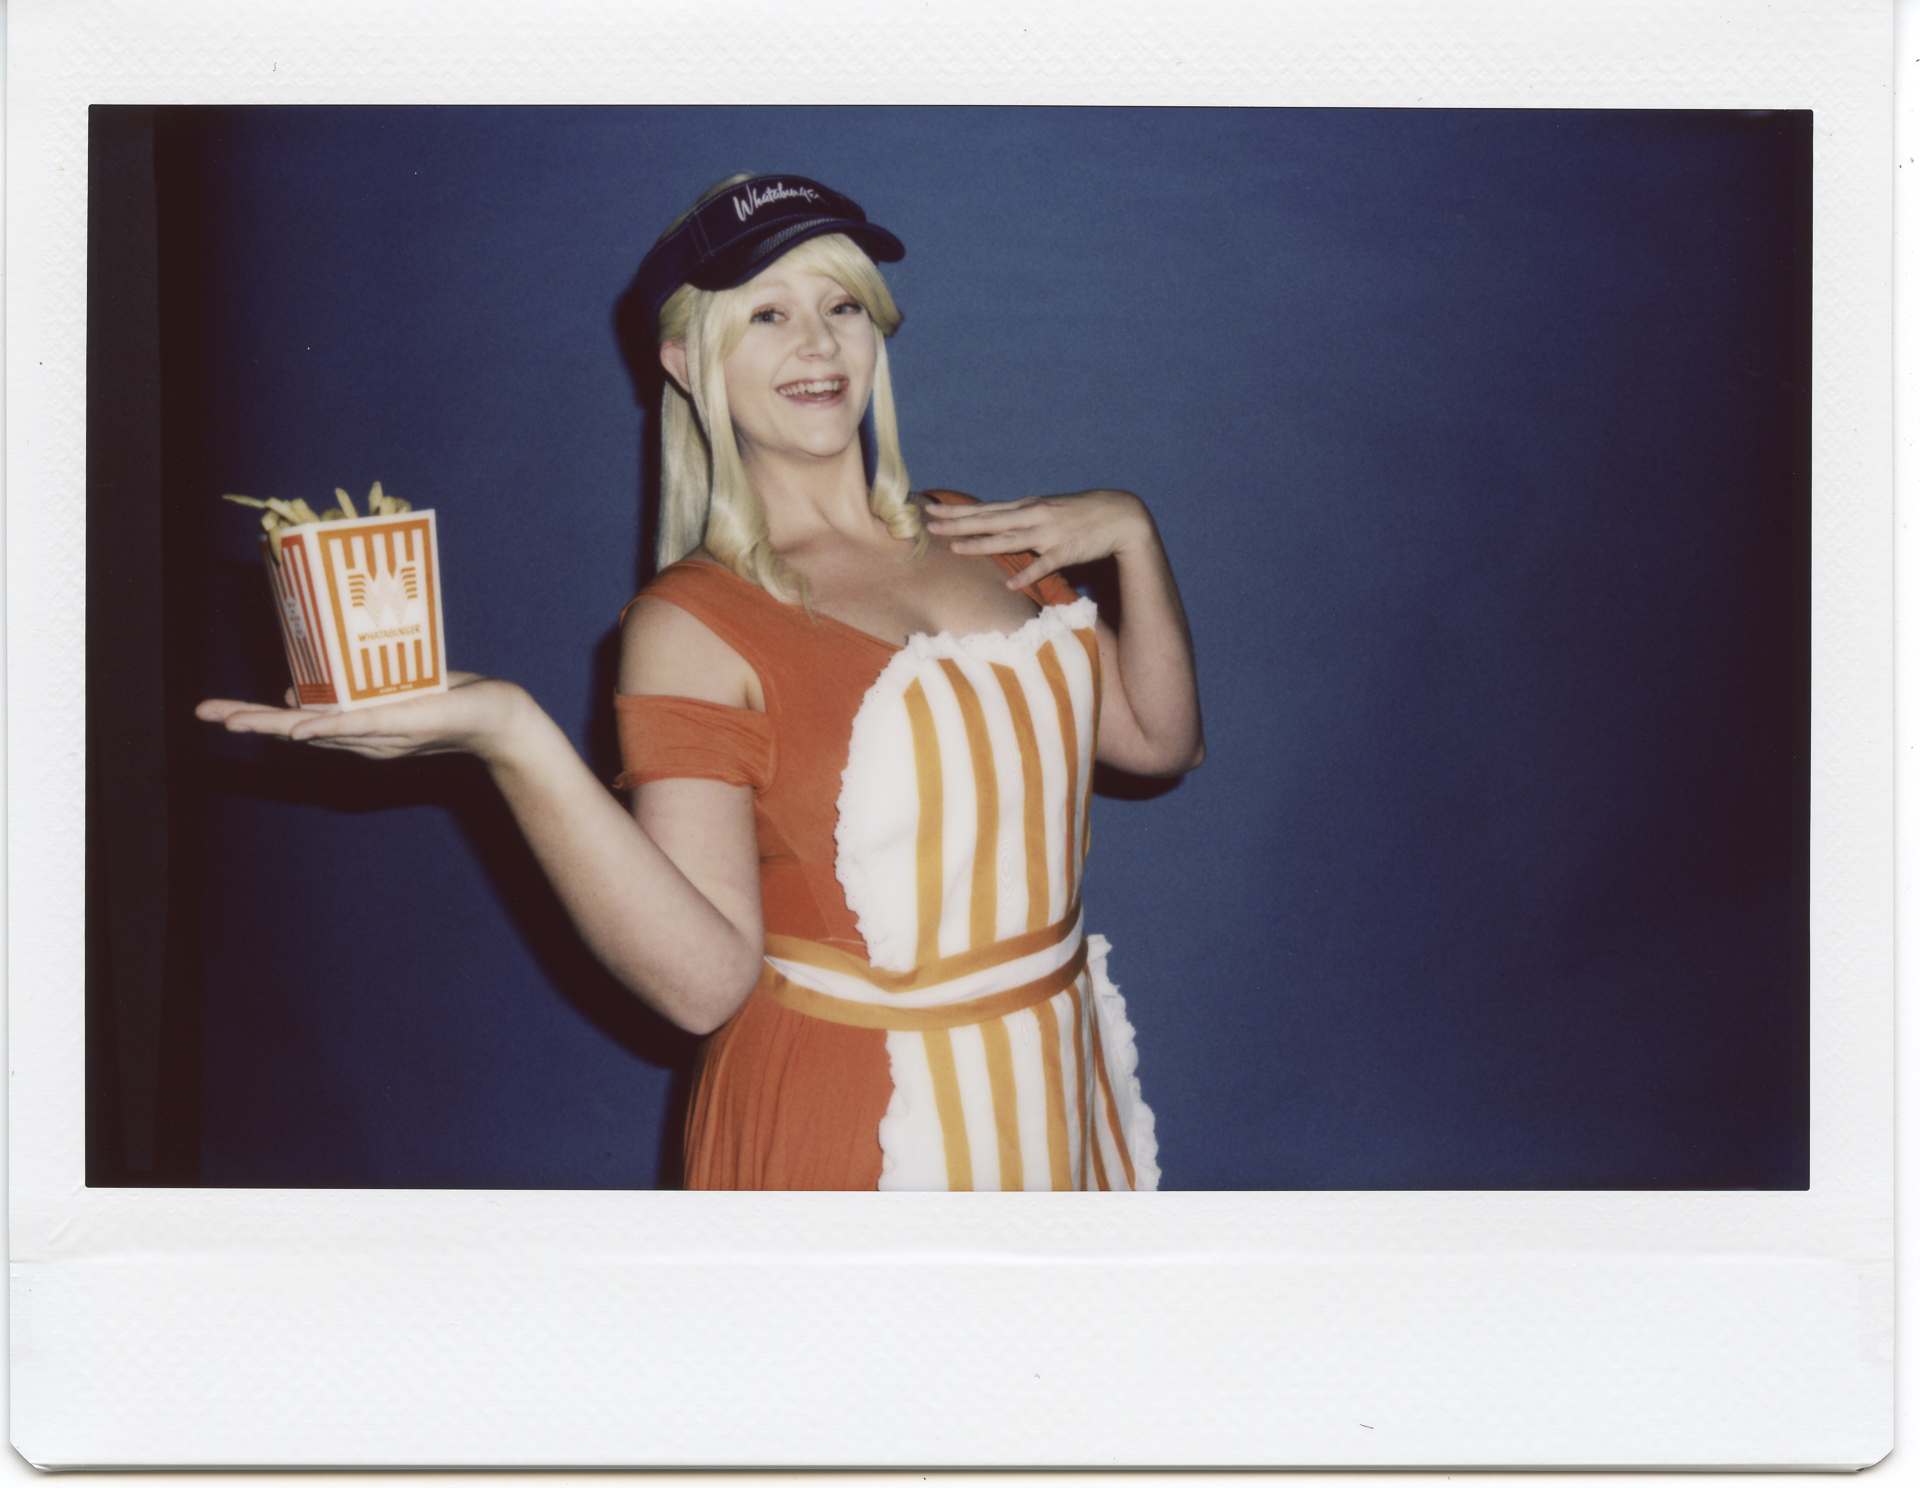 Allybelle Cosplay in Whatagirl cosplay with food from Whataburger